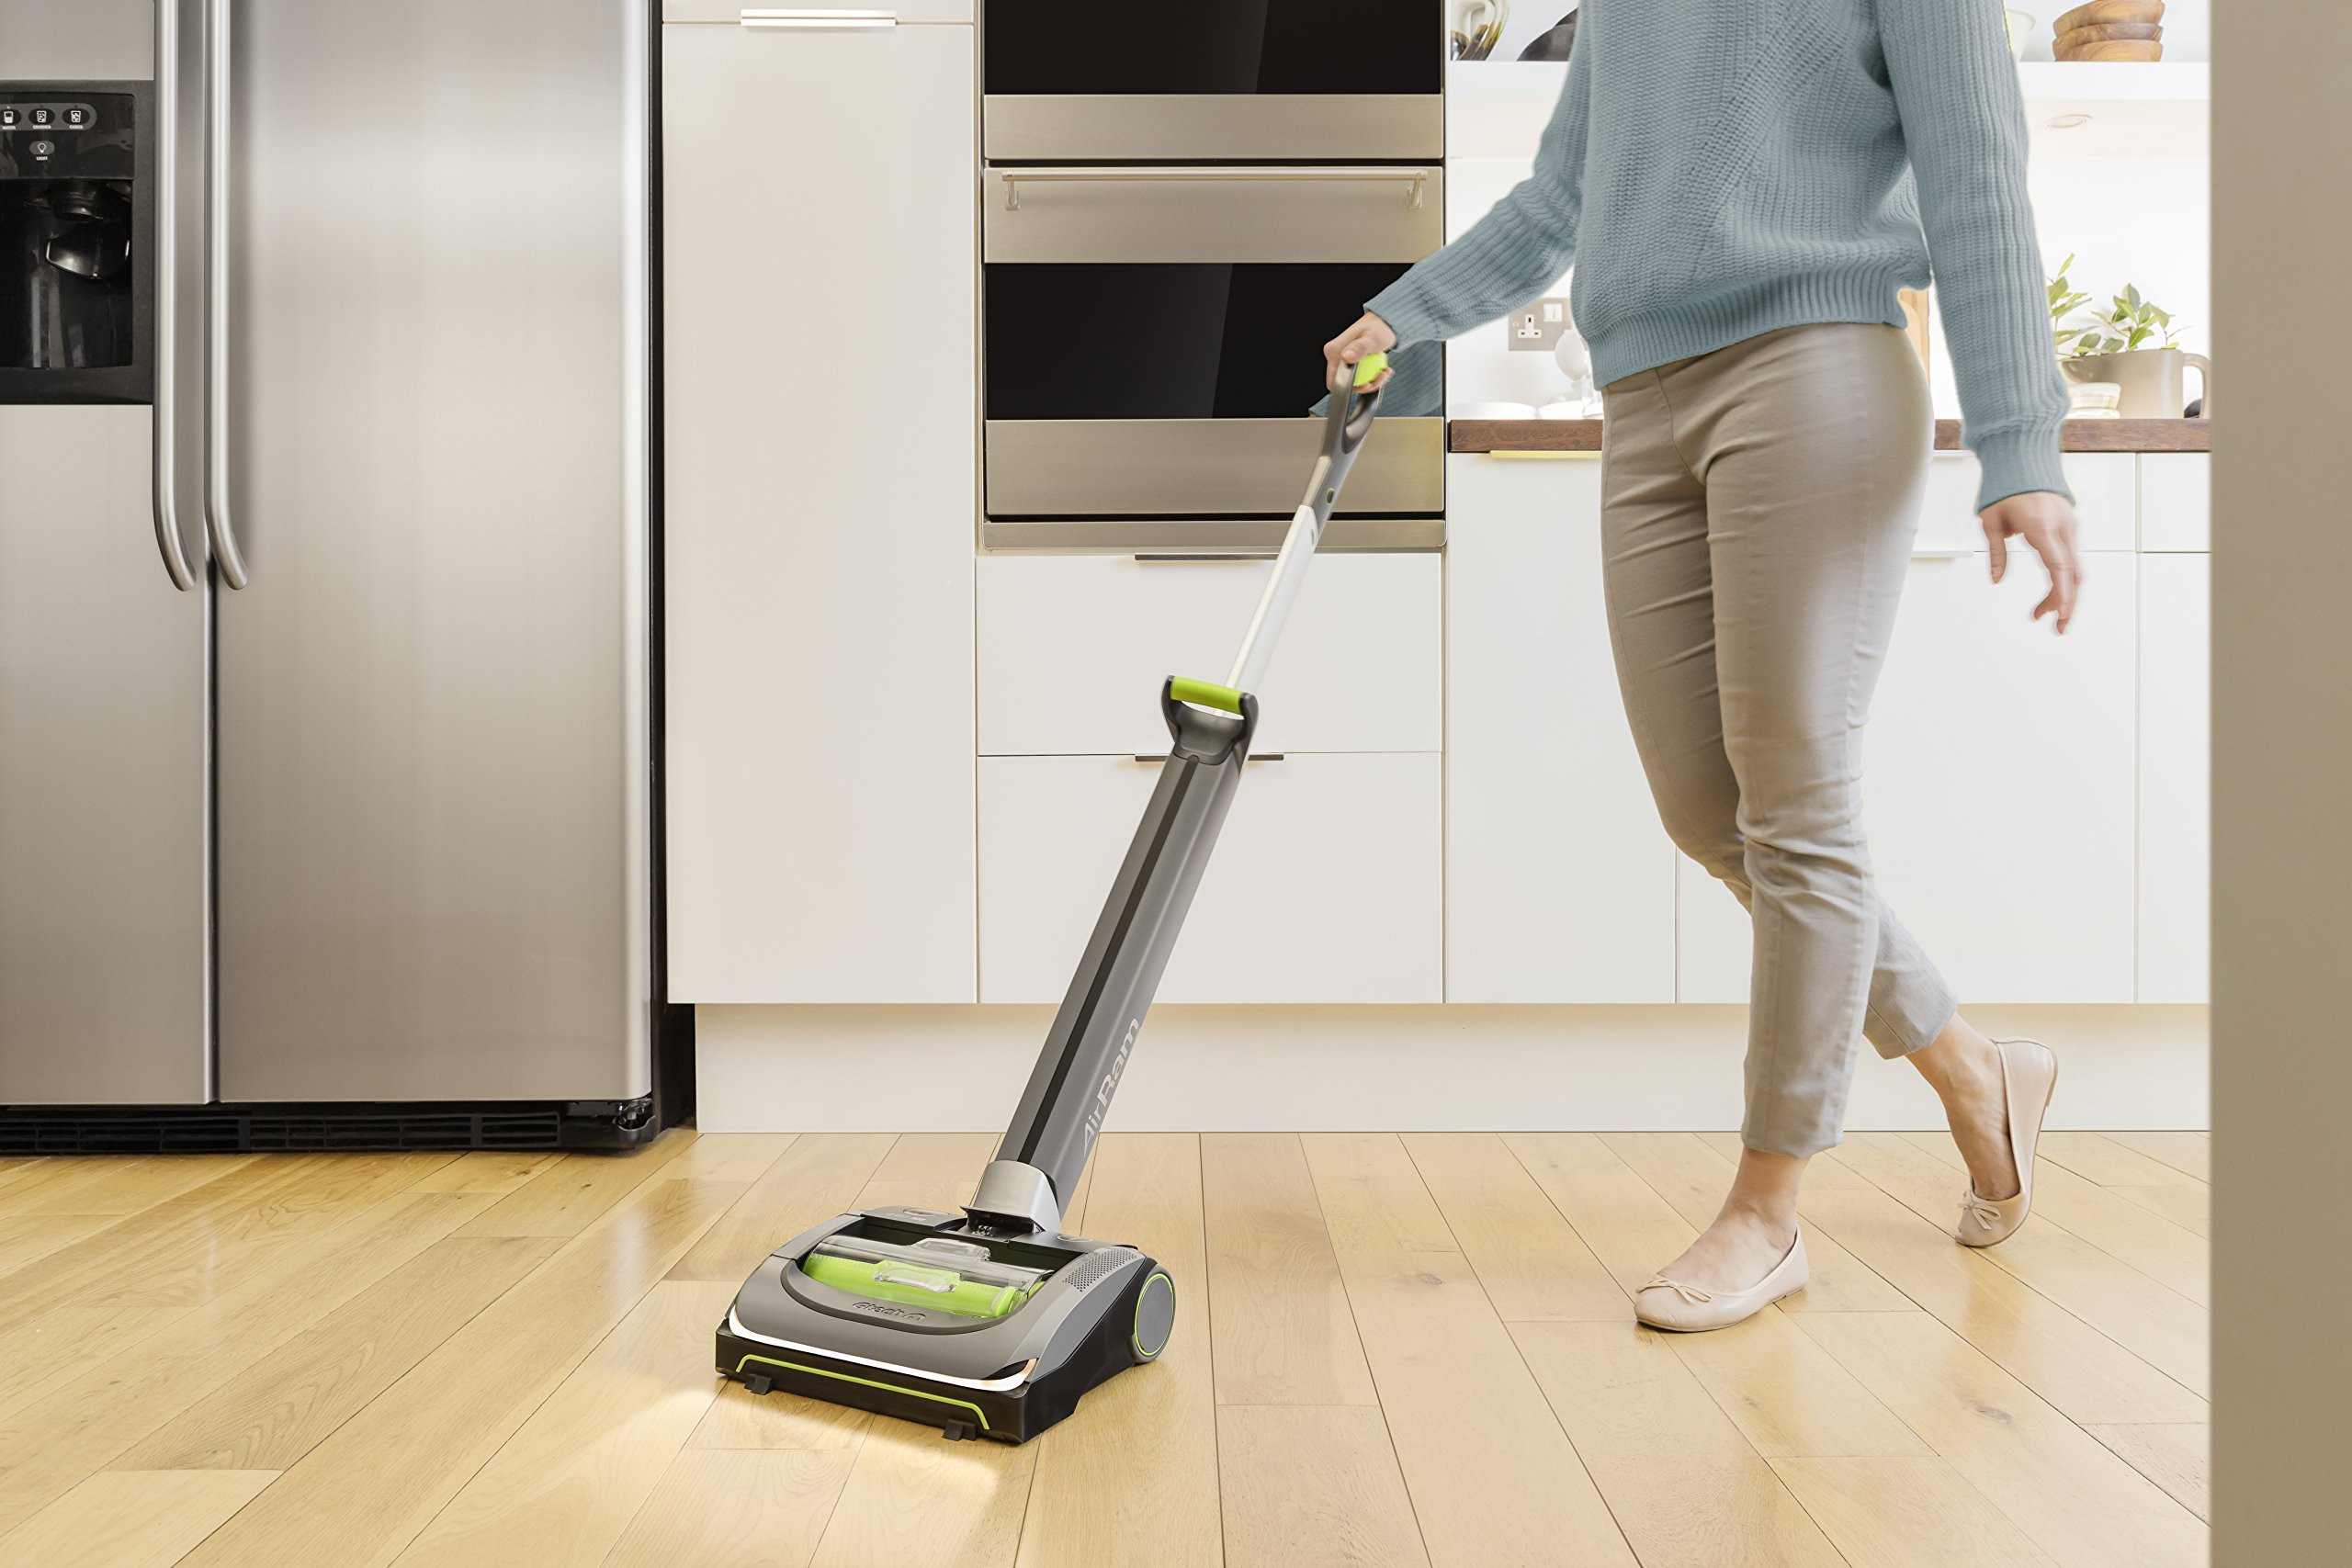 Shark Navigator Professional Hardwood Floor Vacuum Cleaners Of Vacuum and Floor Care Shop Amazon Uk In Vacuum Cleaners Upright Vacuums